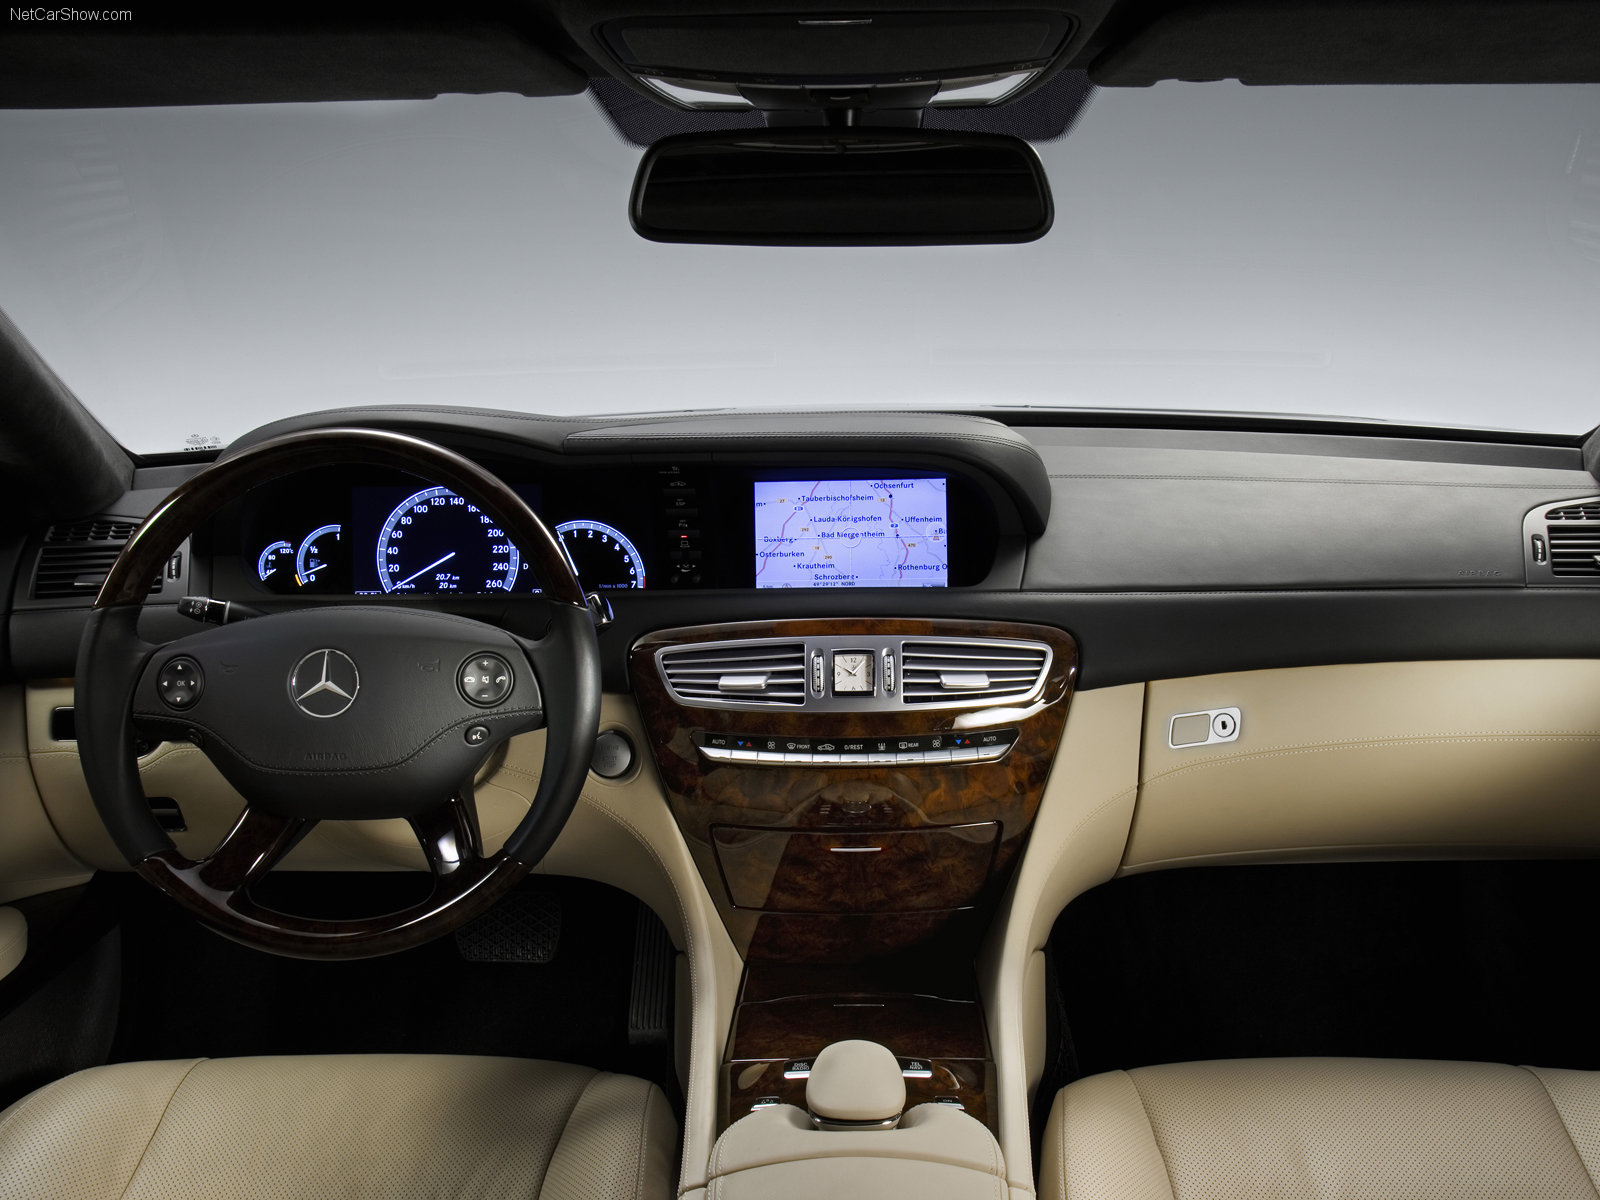 Mercedes benz cl class w216 photos photogallery with 25 pics carsbase com